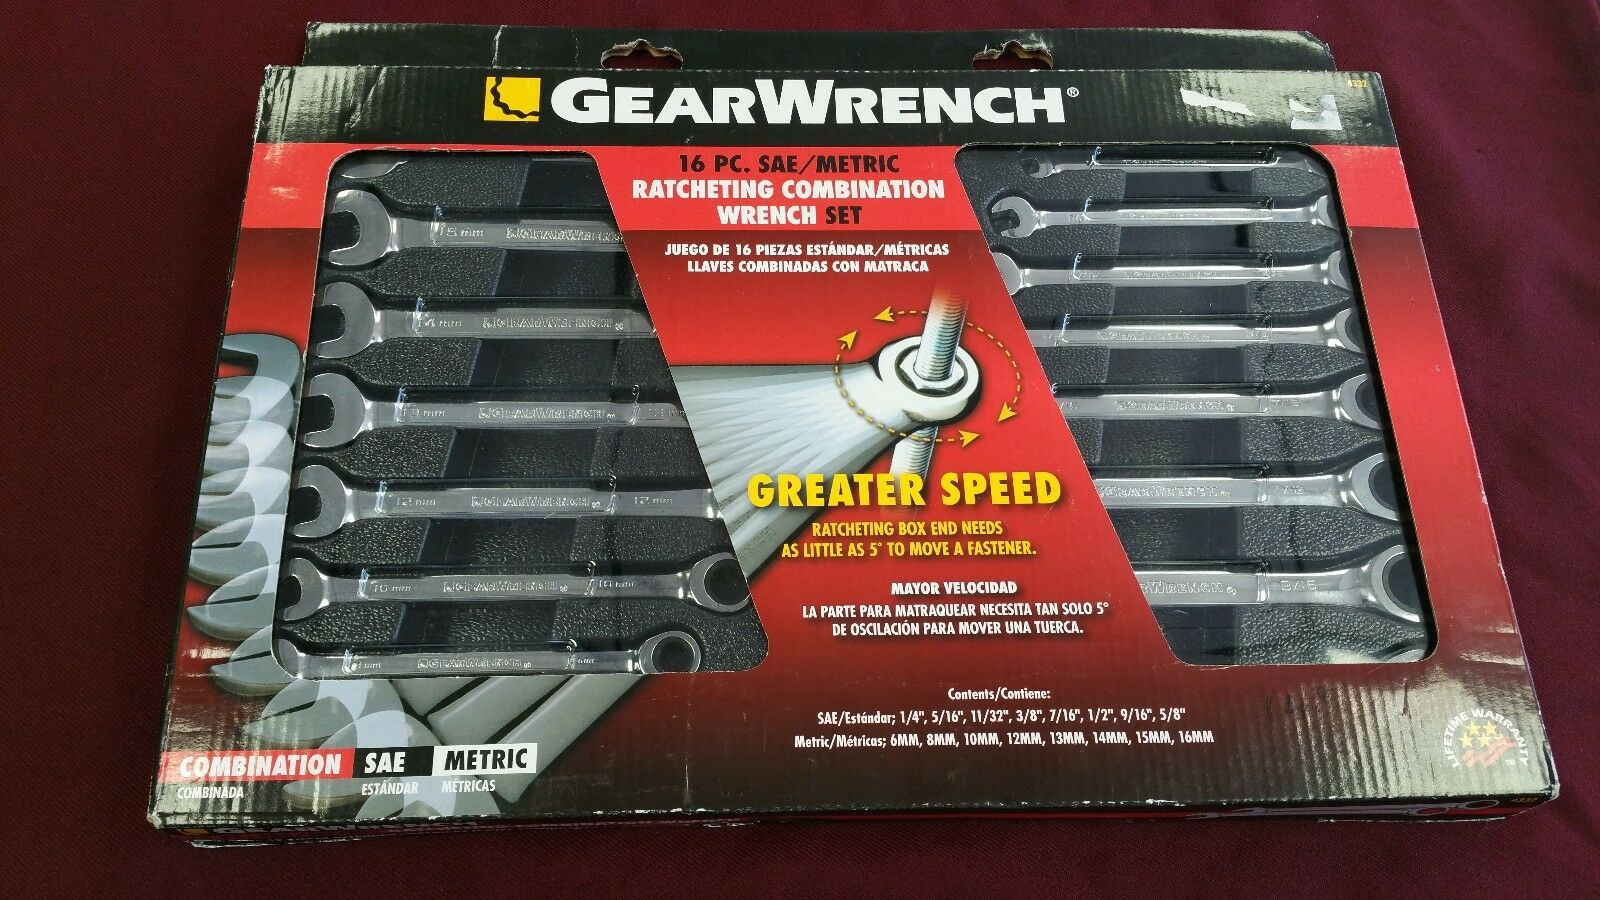 Gearwrench 16pc Ratcheting Combination Wrench Set 4332 Metric SAE NEW